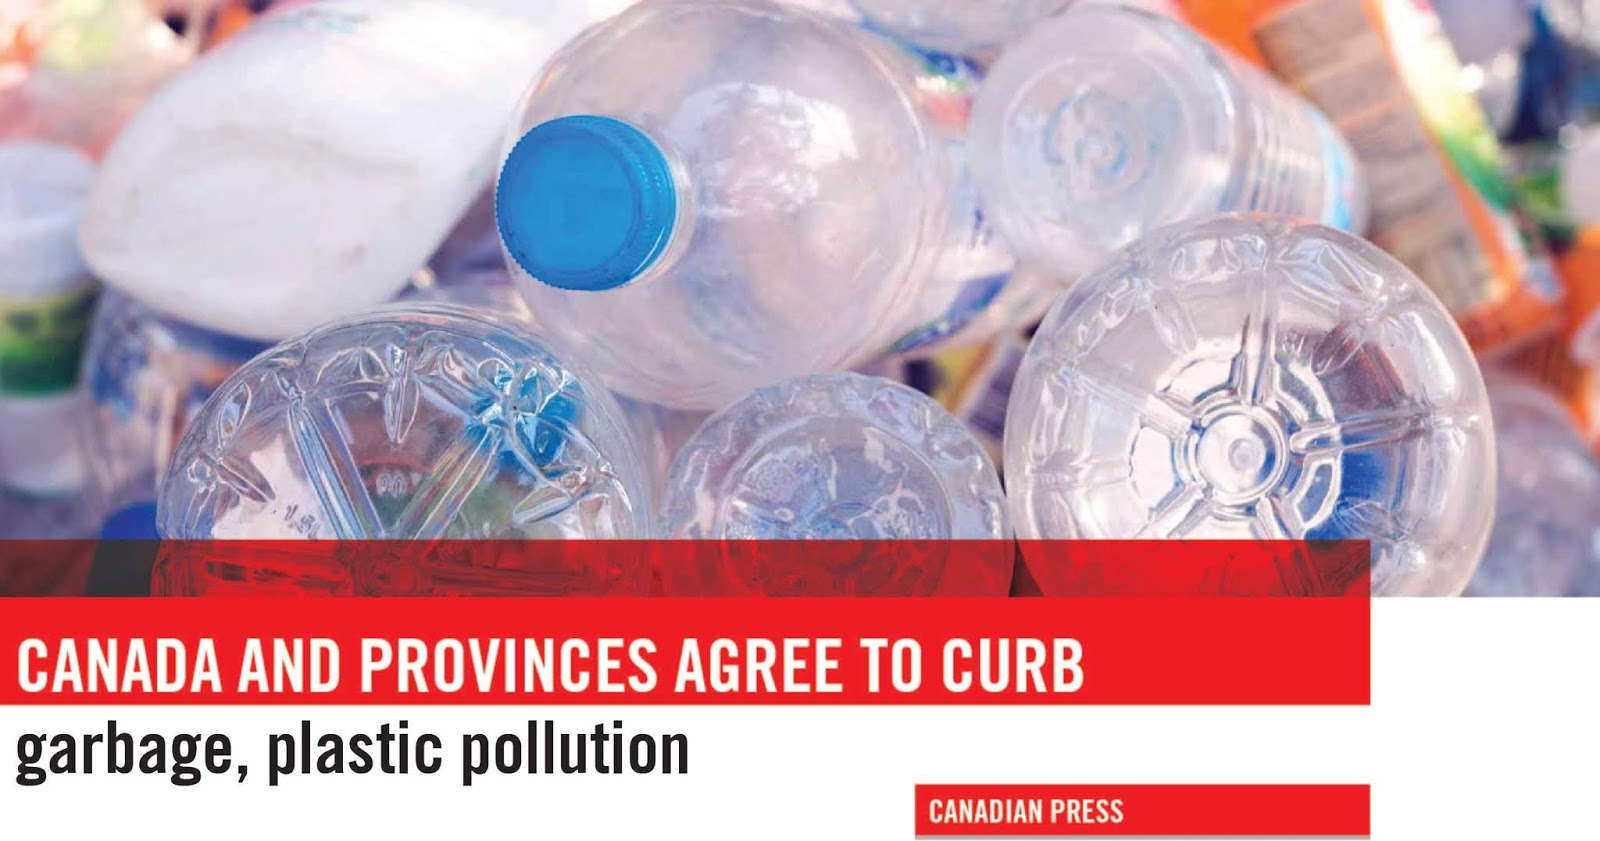 Canada and provinces agree to curb garbage